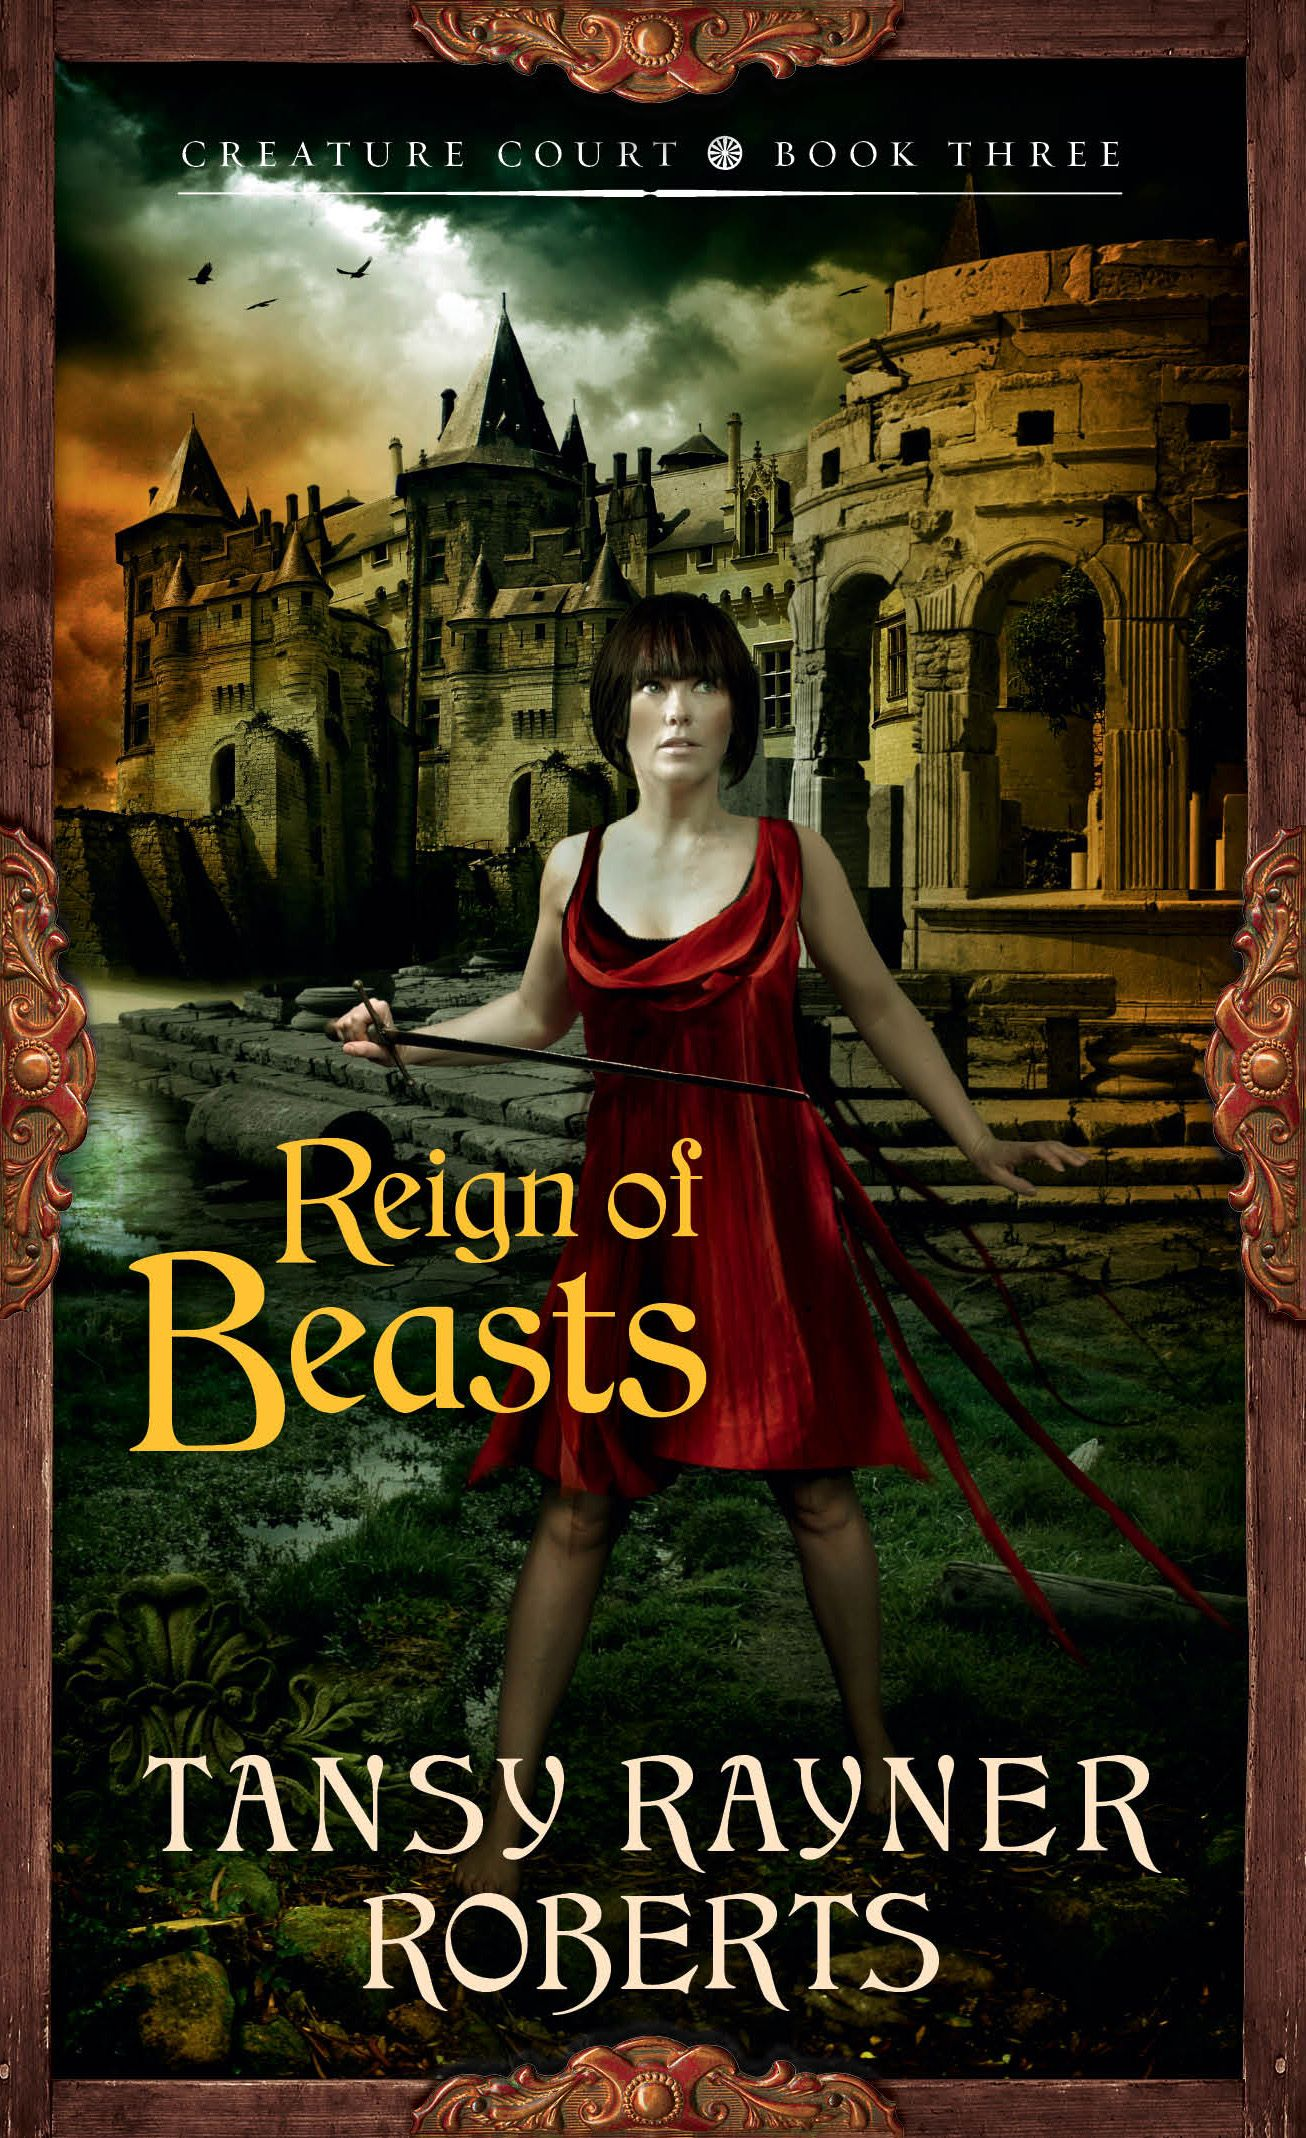 Livilla, on the cover of Reign of Beasts by Tansy Rayner Roberts